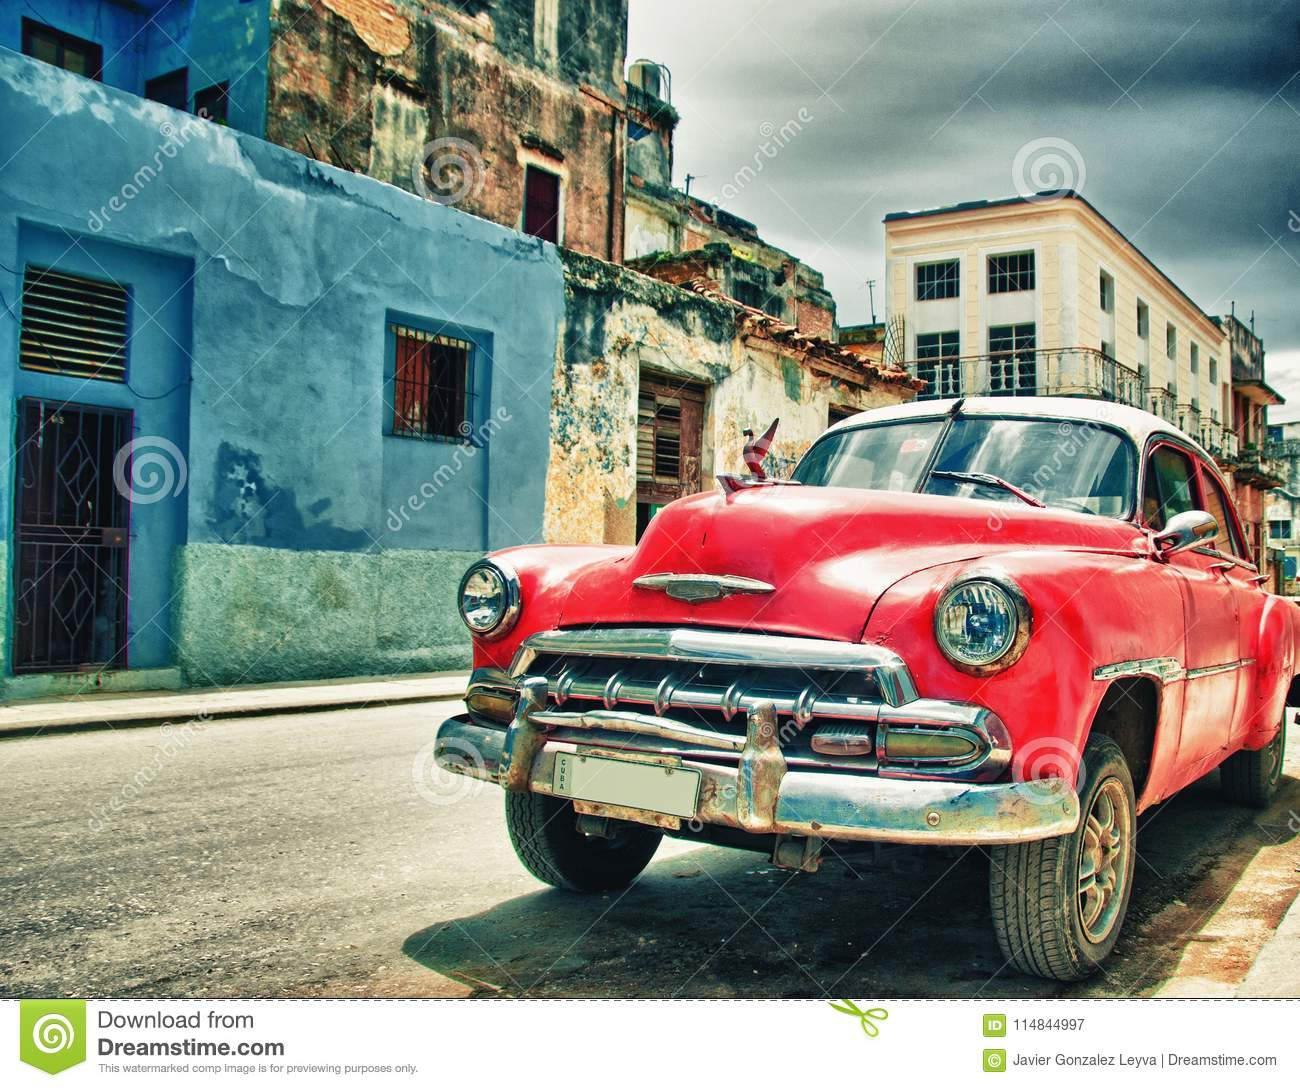 Old american car parked on the street of habana, cuba